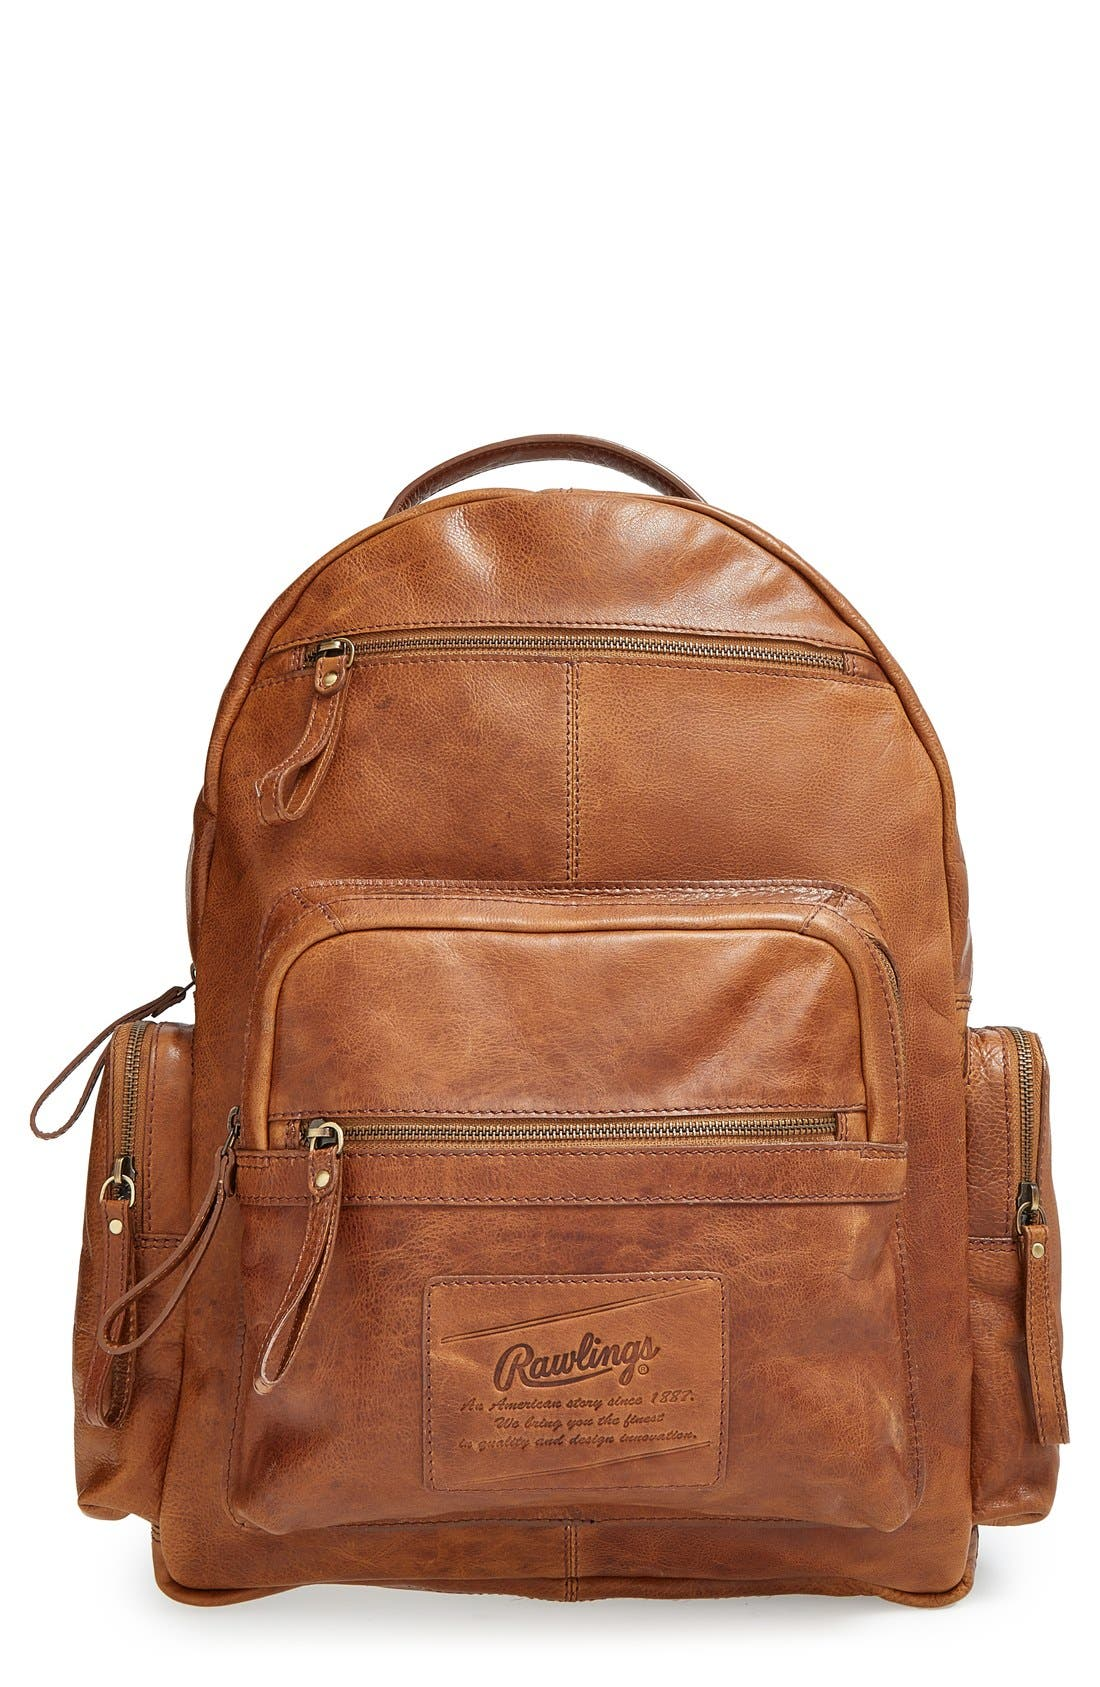 'Rugged' Leather Backpack,                             Main thumbnail 1, color,                             202